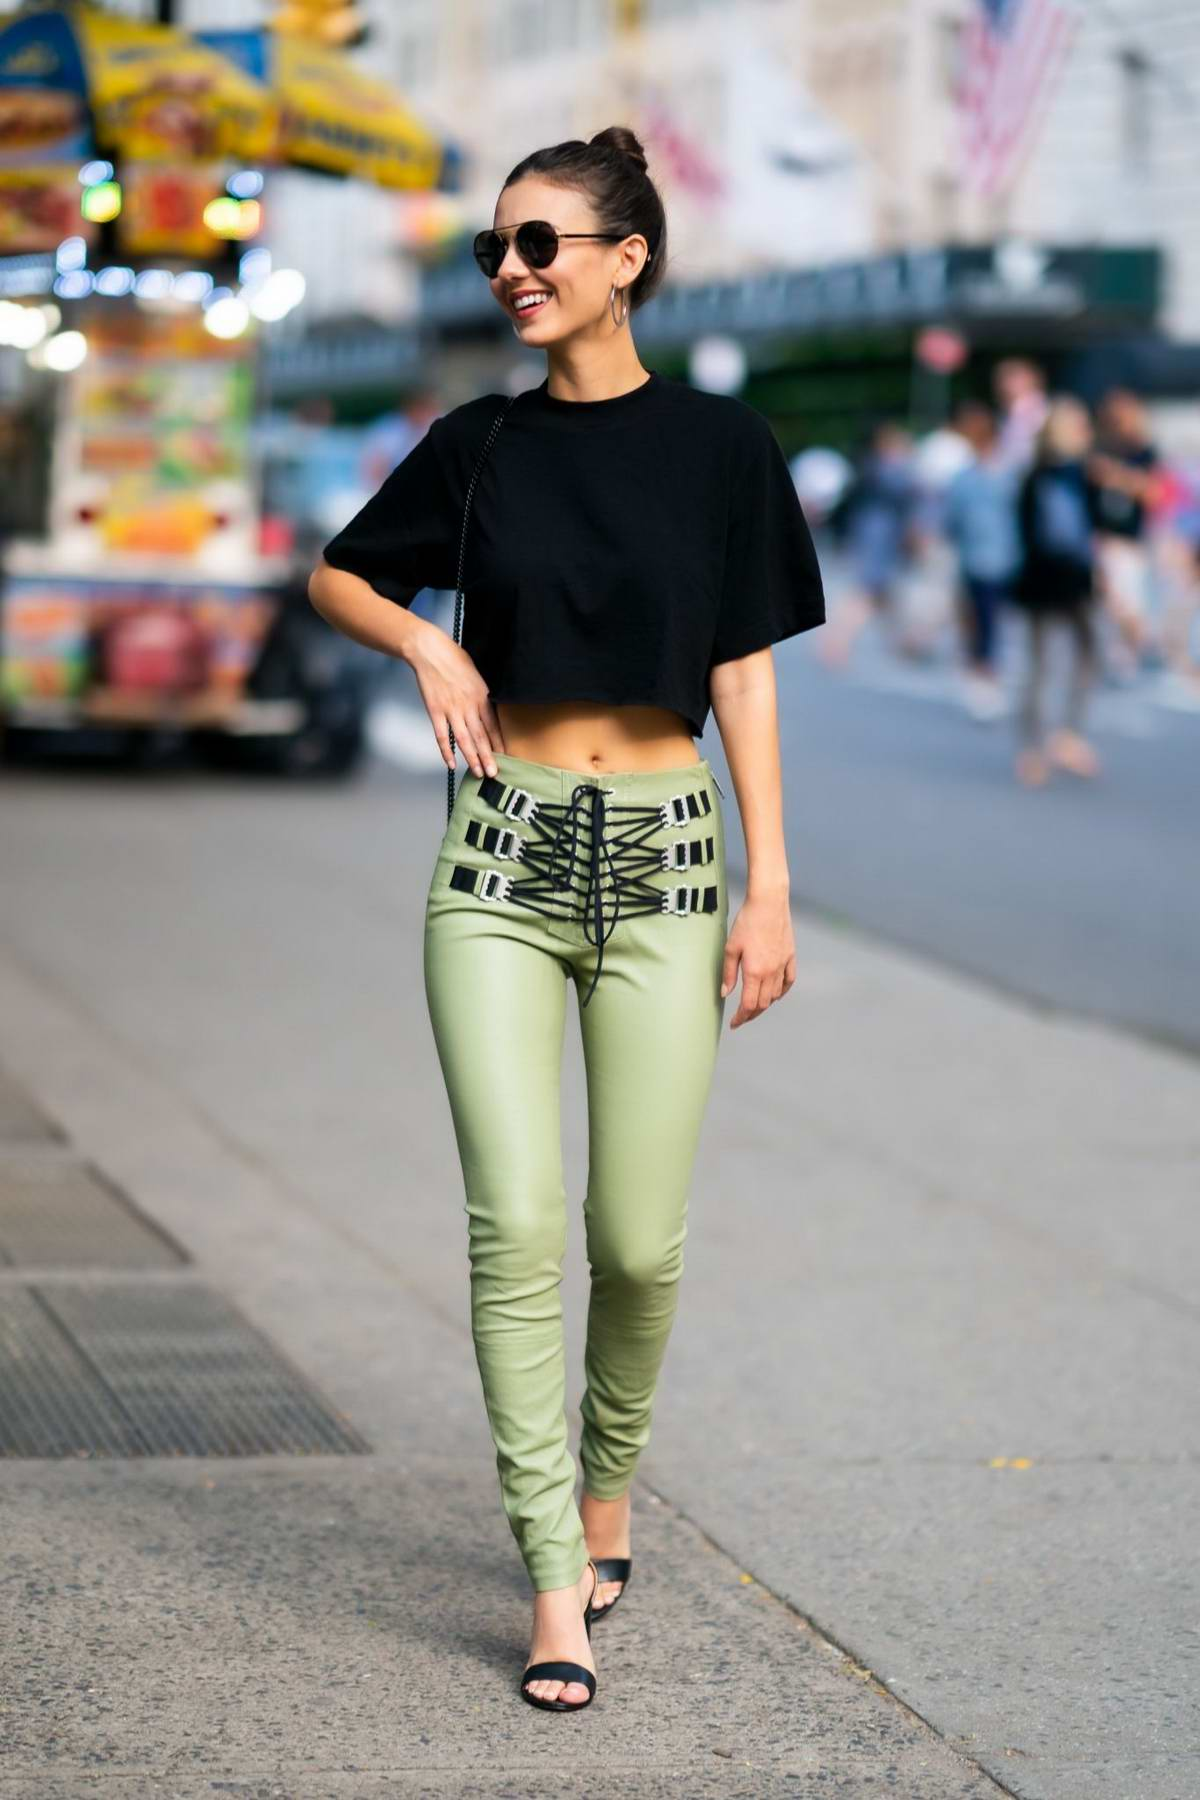 Victoria Justice Looks Chic In A Black Crop Top And Green